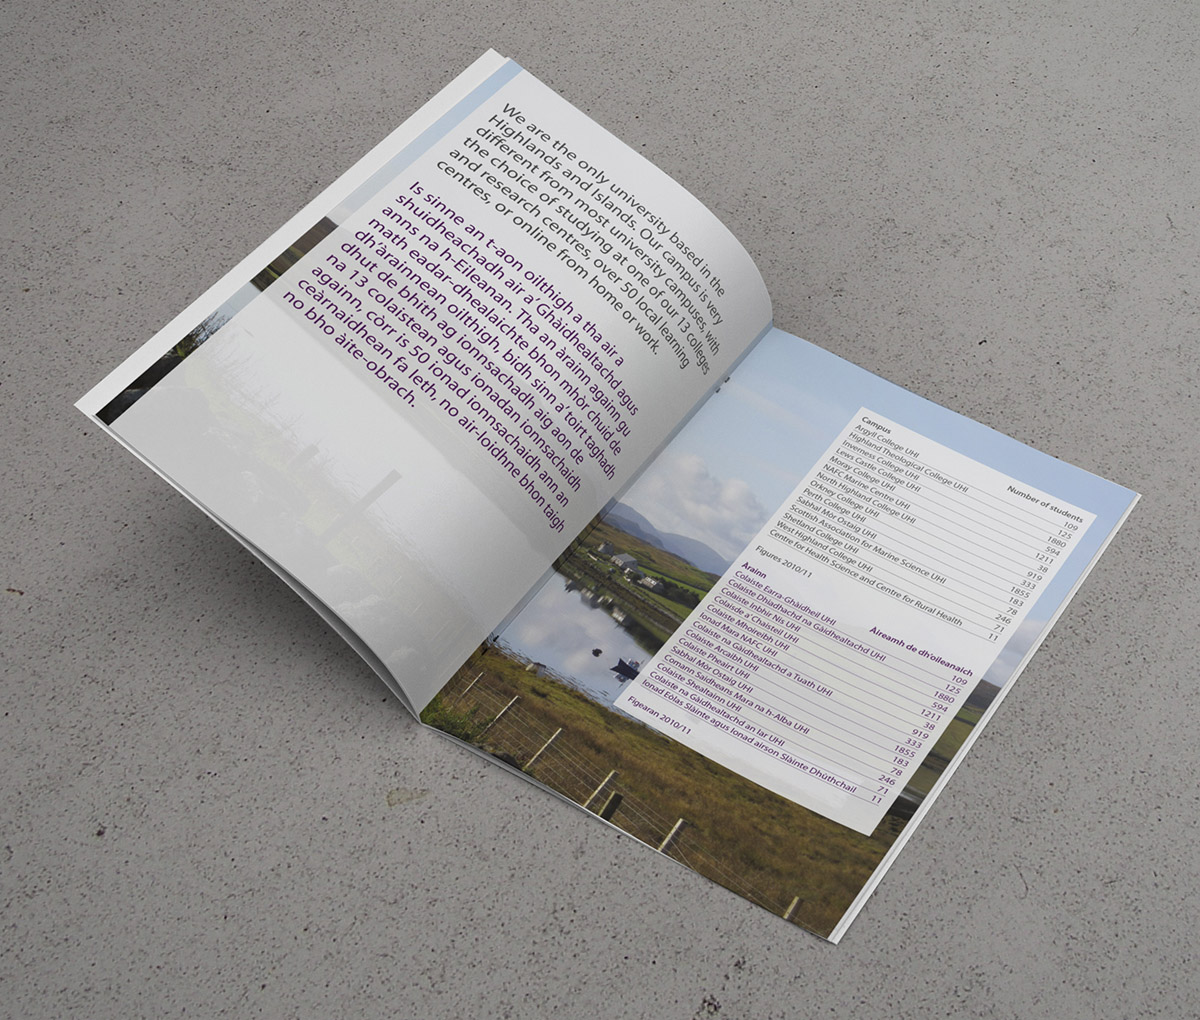 UHI Fact brochure 2014 spread7 lo res